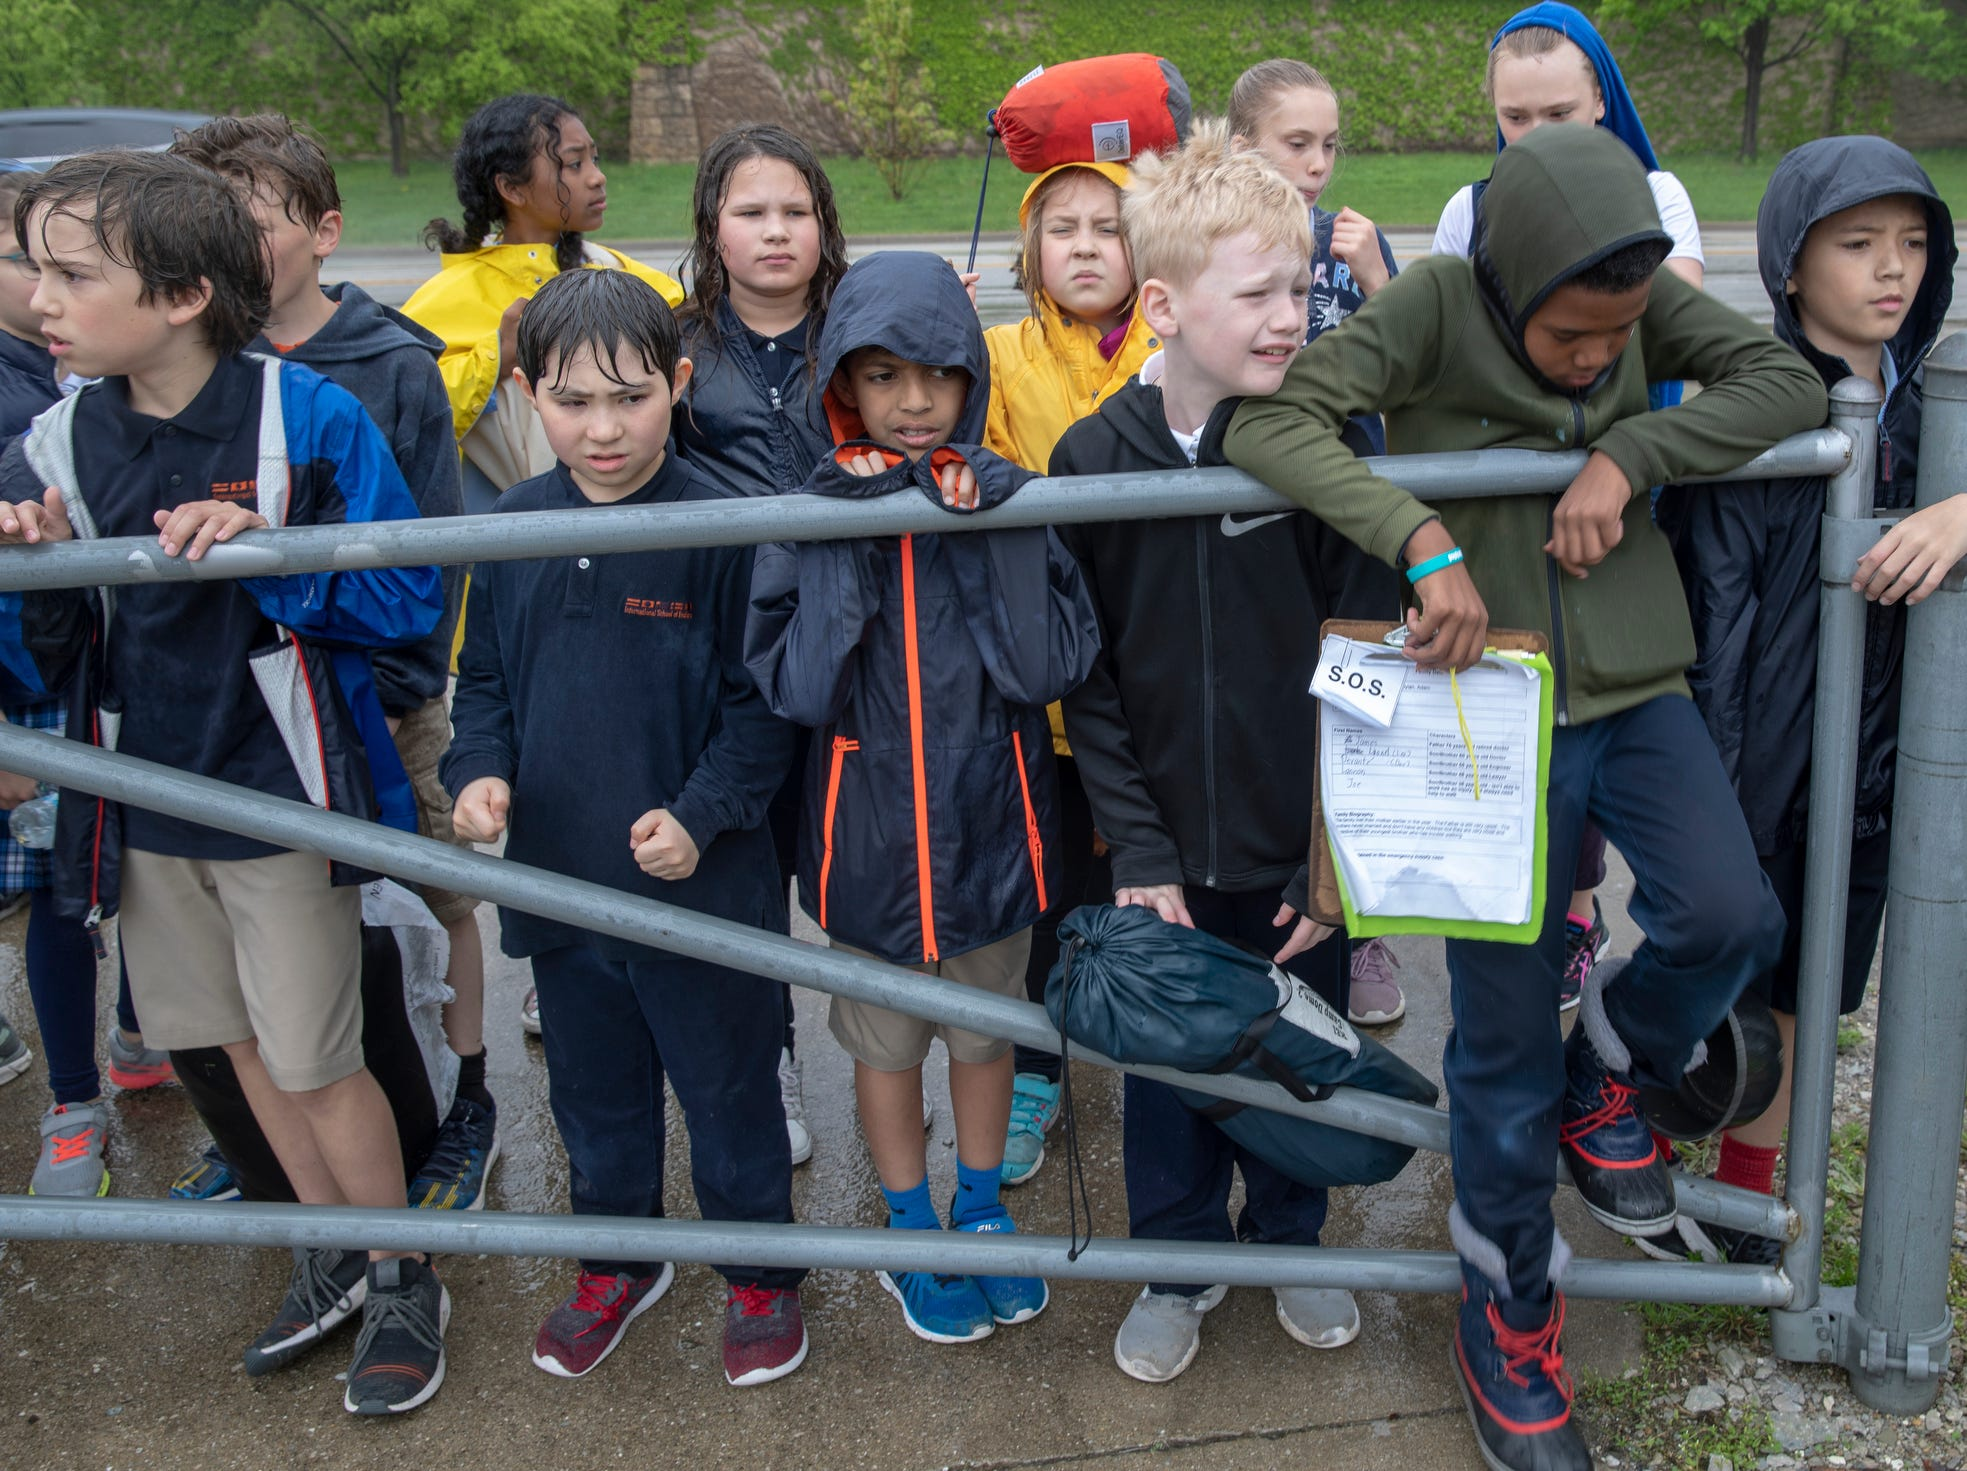 Students wait by a simulated border gate during a workshop for fourth graders at International School of Indiana, Indianapolis, Thursday, May 1, 2019. The exercise, developed by the United Nations, is designed to simulate some of the hardships that refugees face when they're trying to leave their homeland.